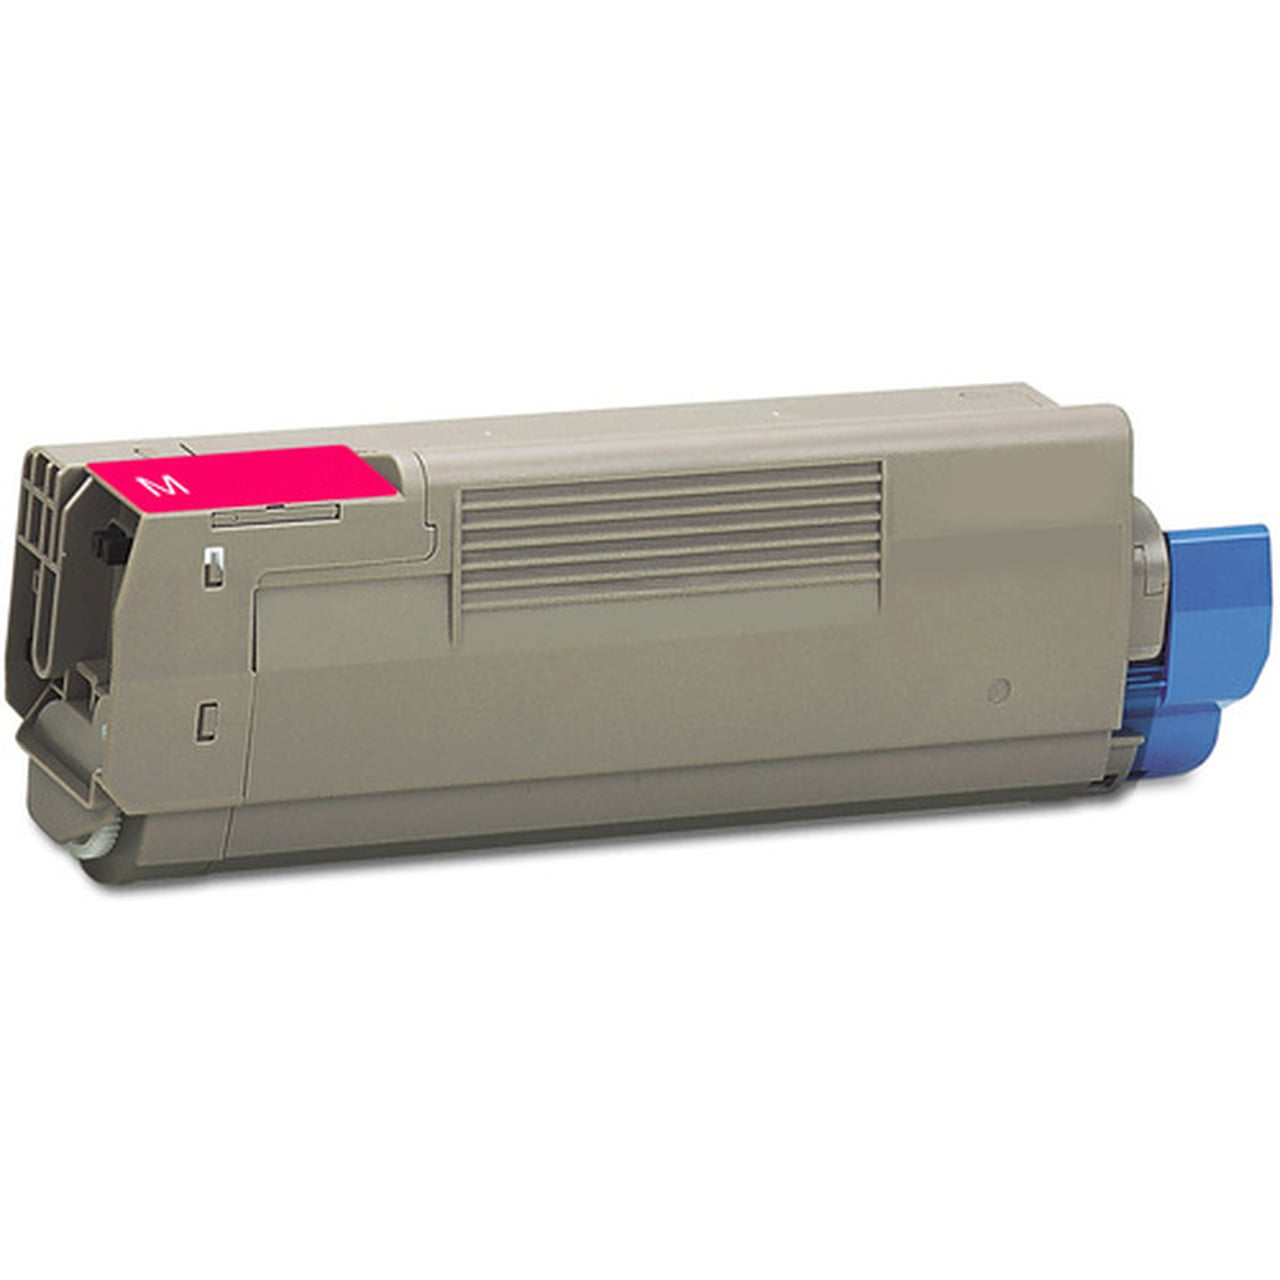 43865718 Toner Cartridge - Okidata Compatible (Magenta)